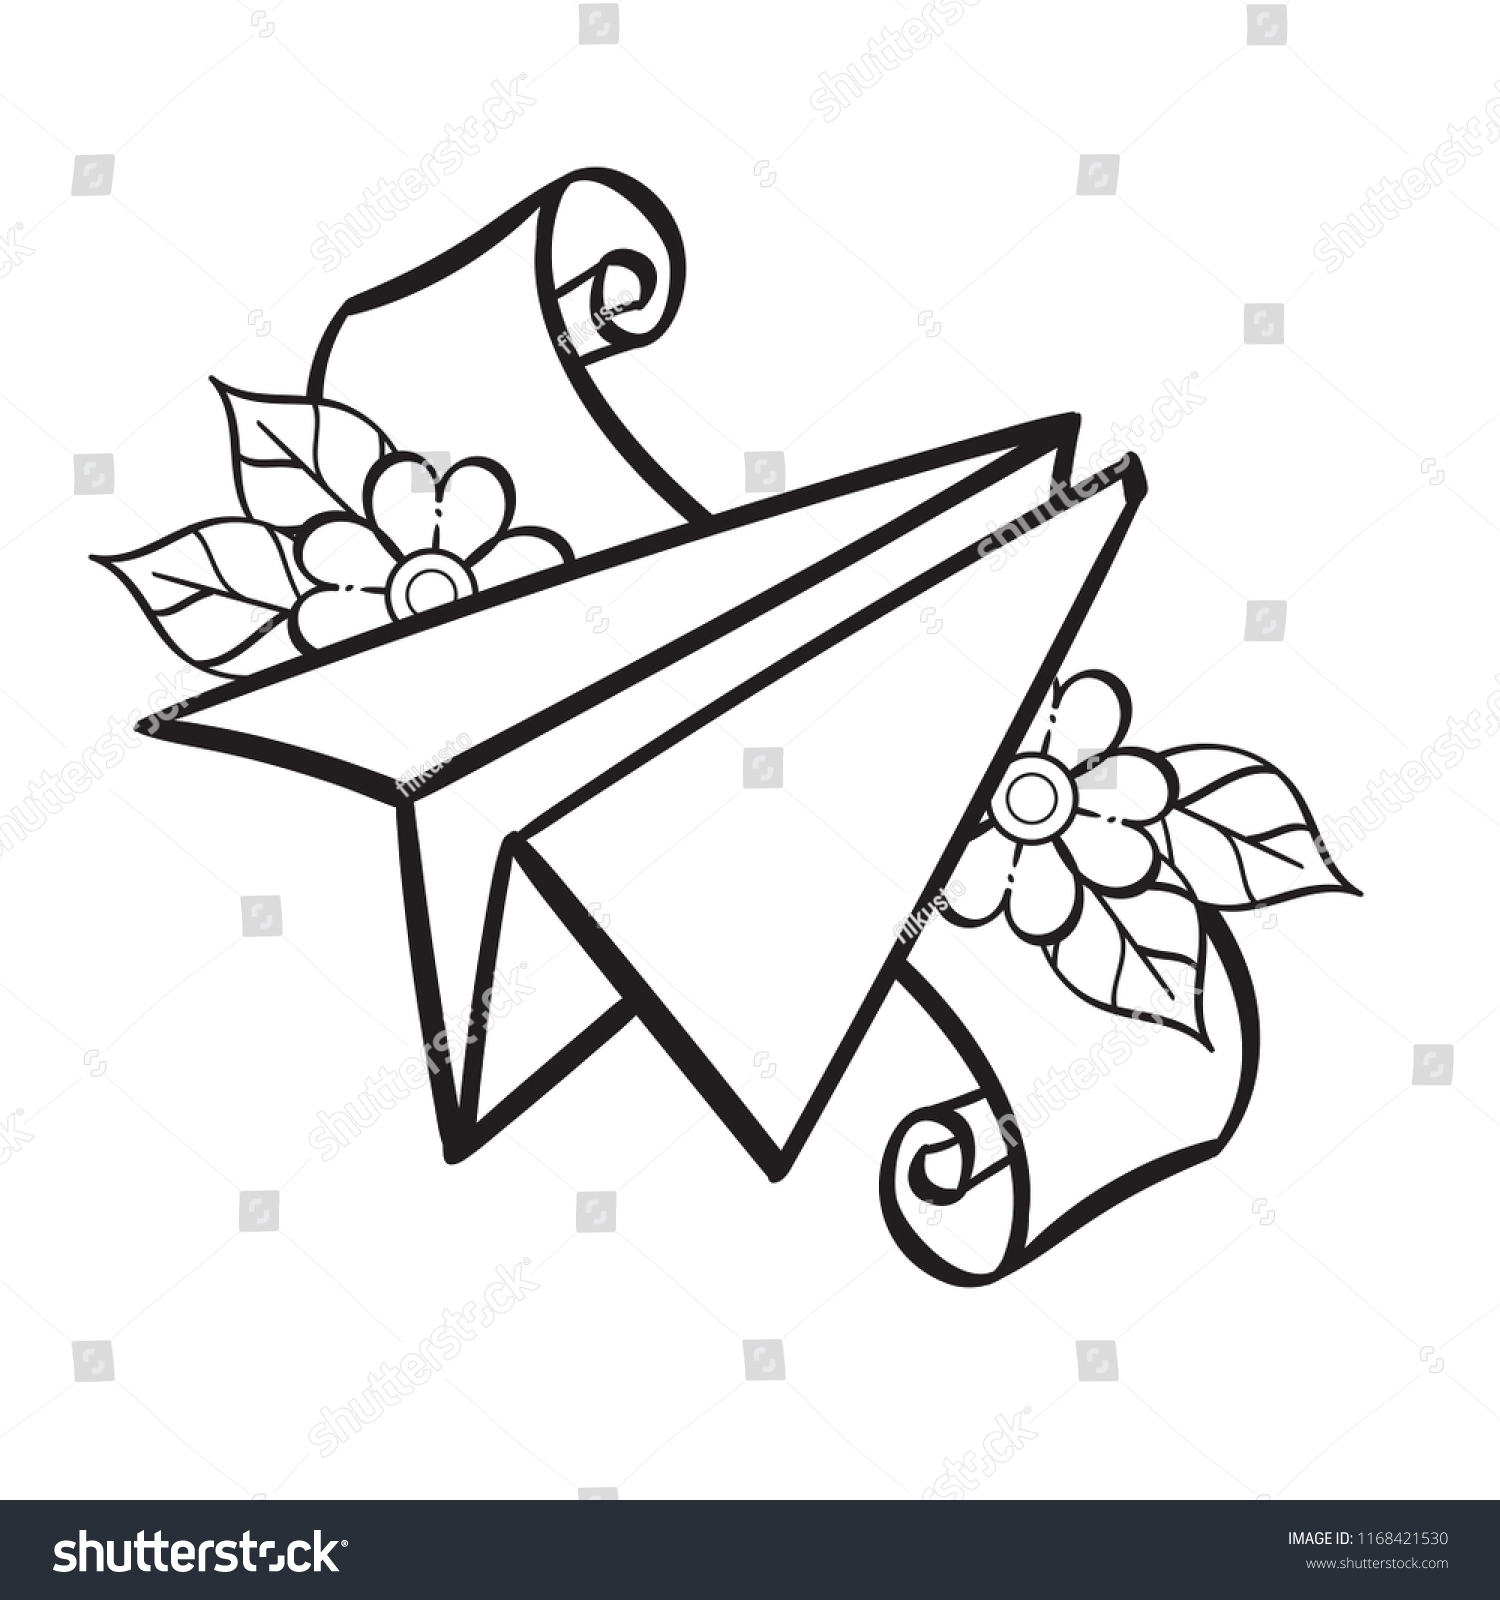 paper airplane contour illustration coloring template stock vector